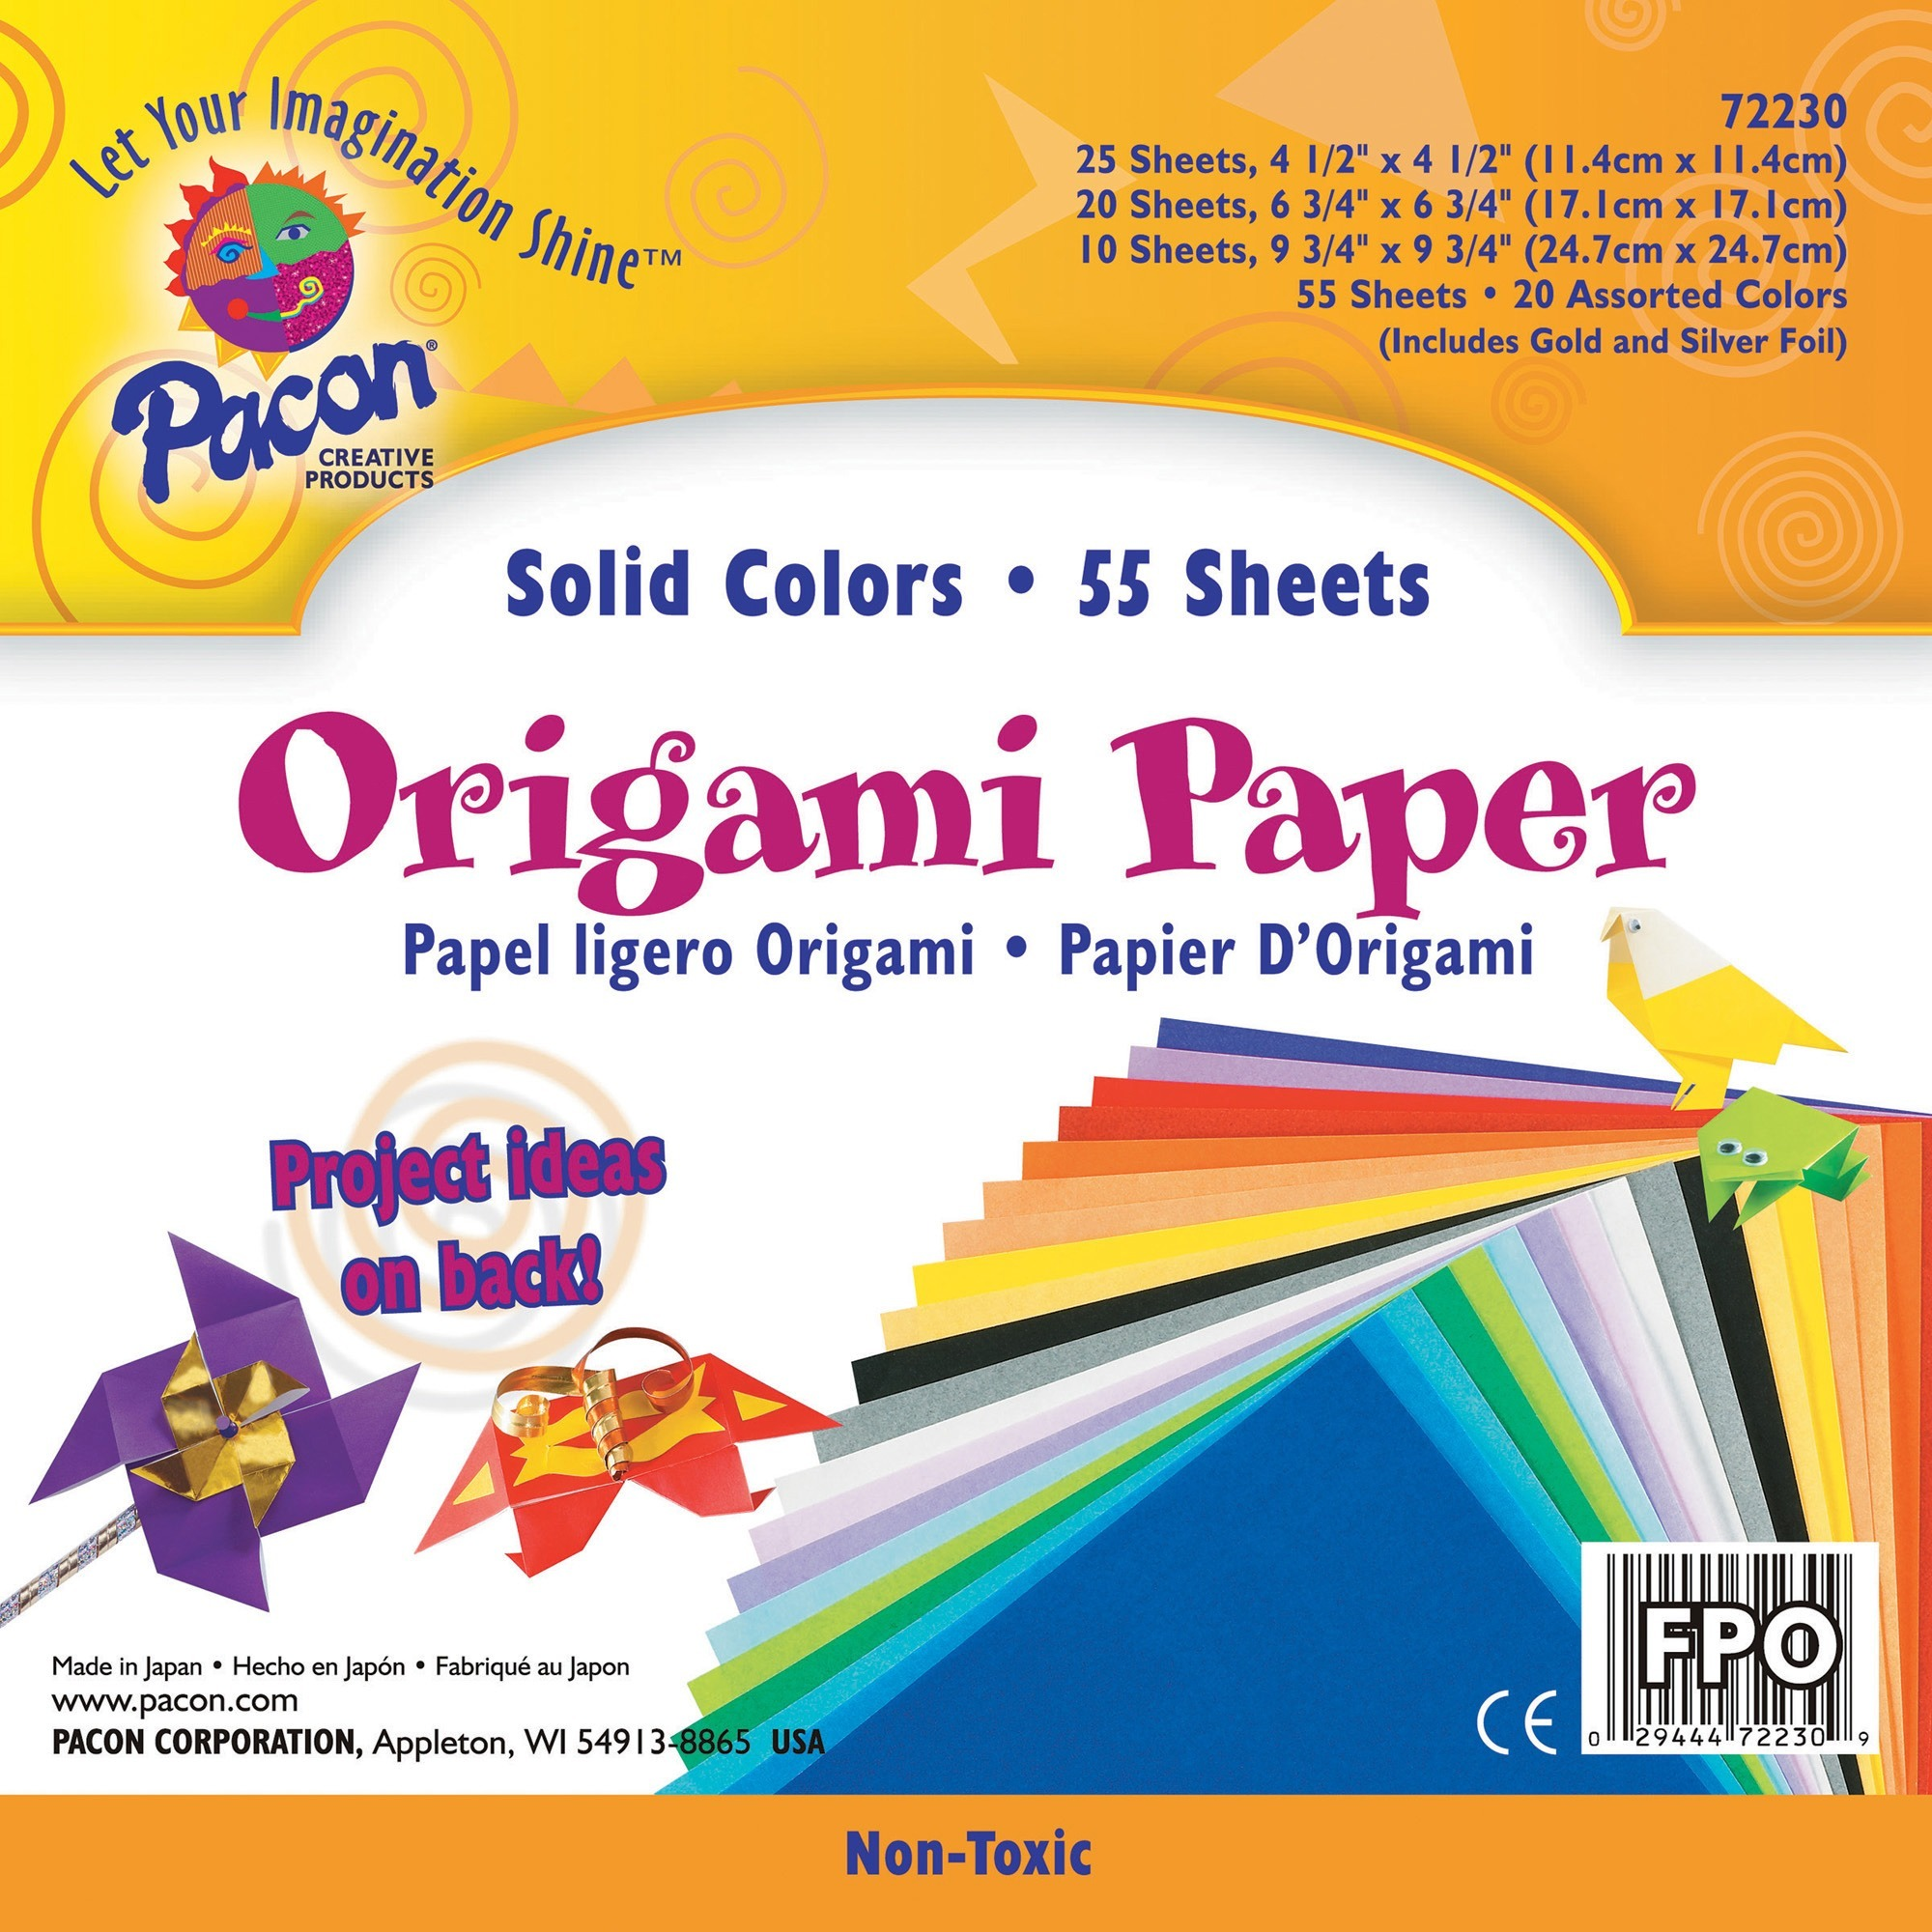 Pacon, PAC72230, Origami Paper, 1 / Pack, Assorted